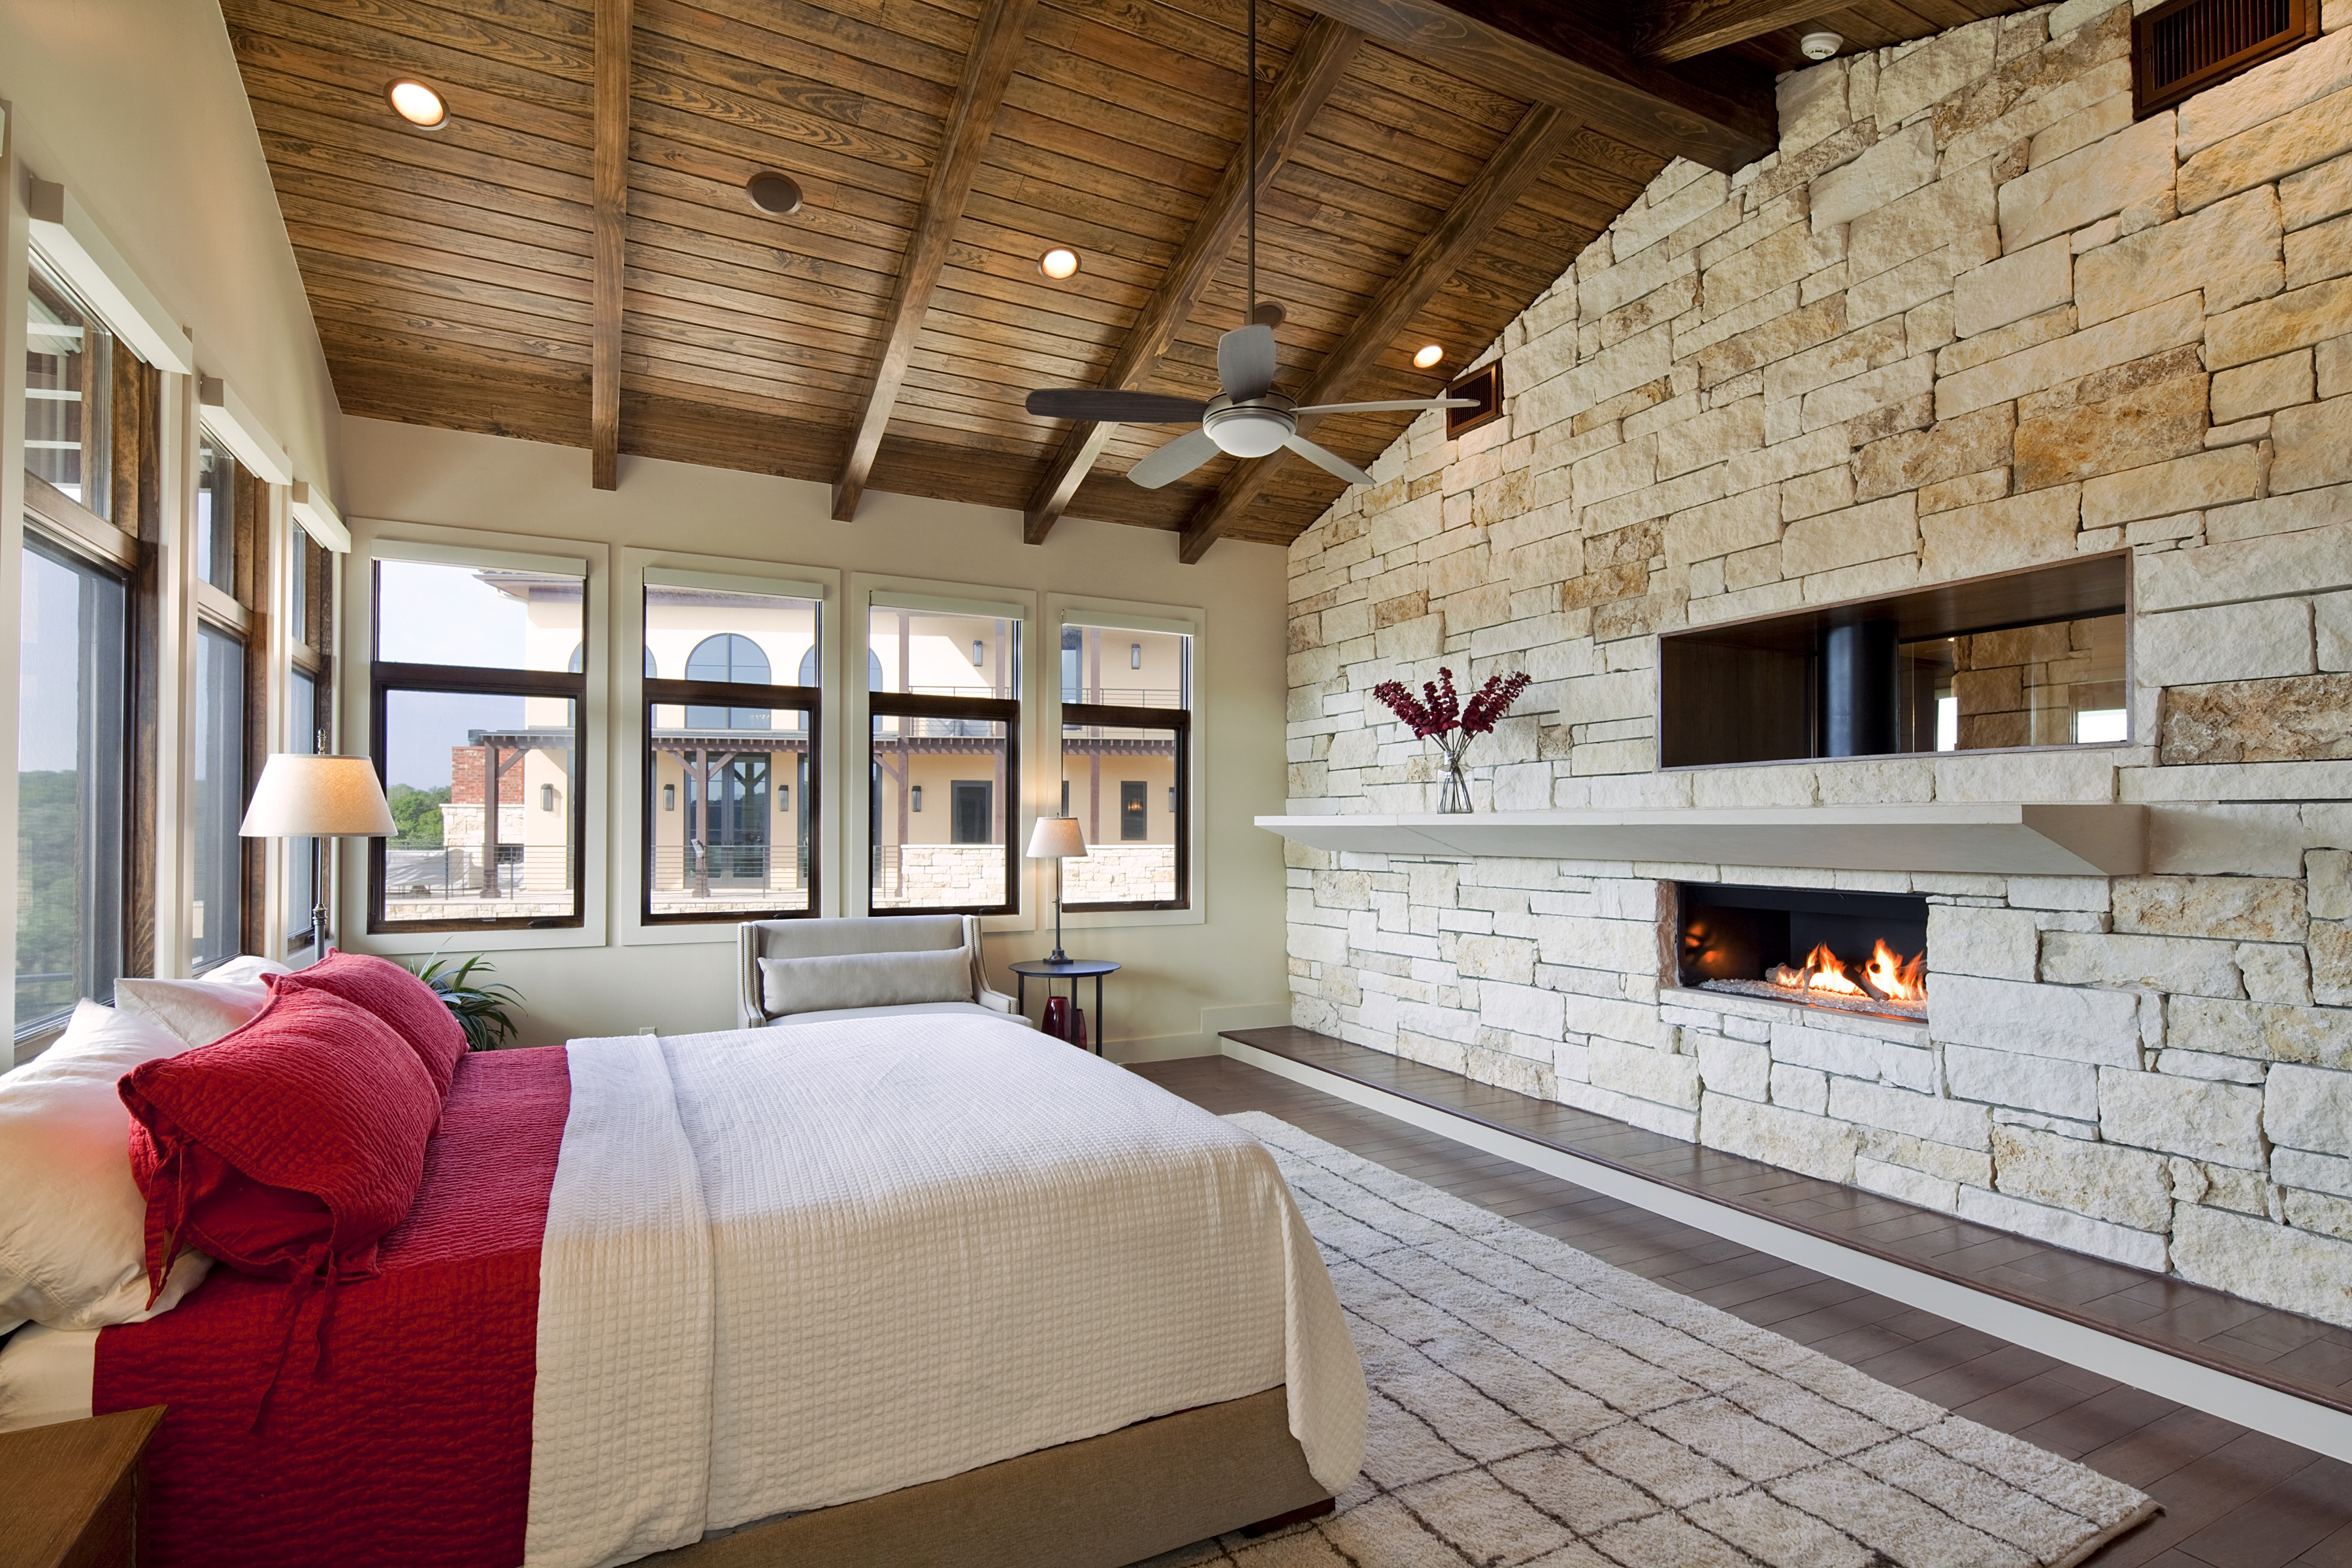 Angled Wood Ceiling For Modern Bedroom With Stone Wall (View 14 of 31)